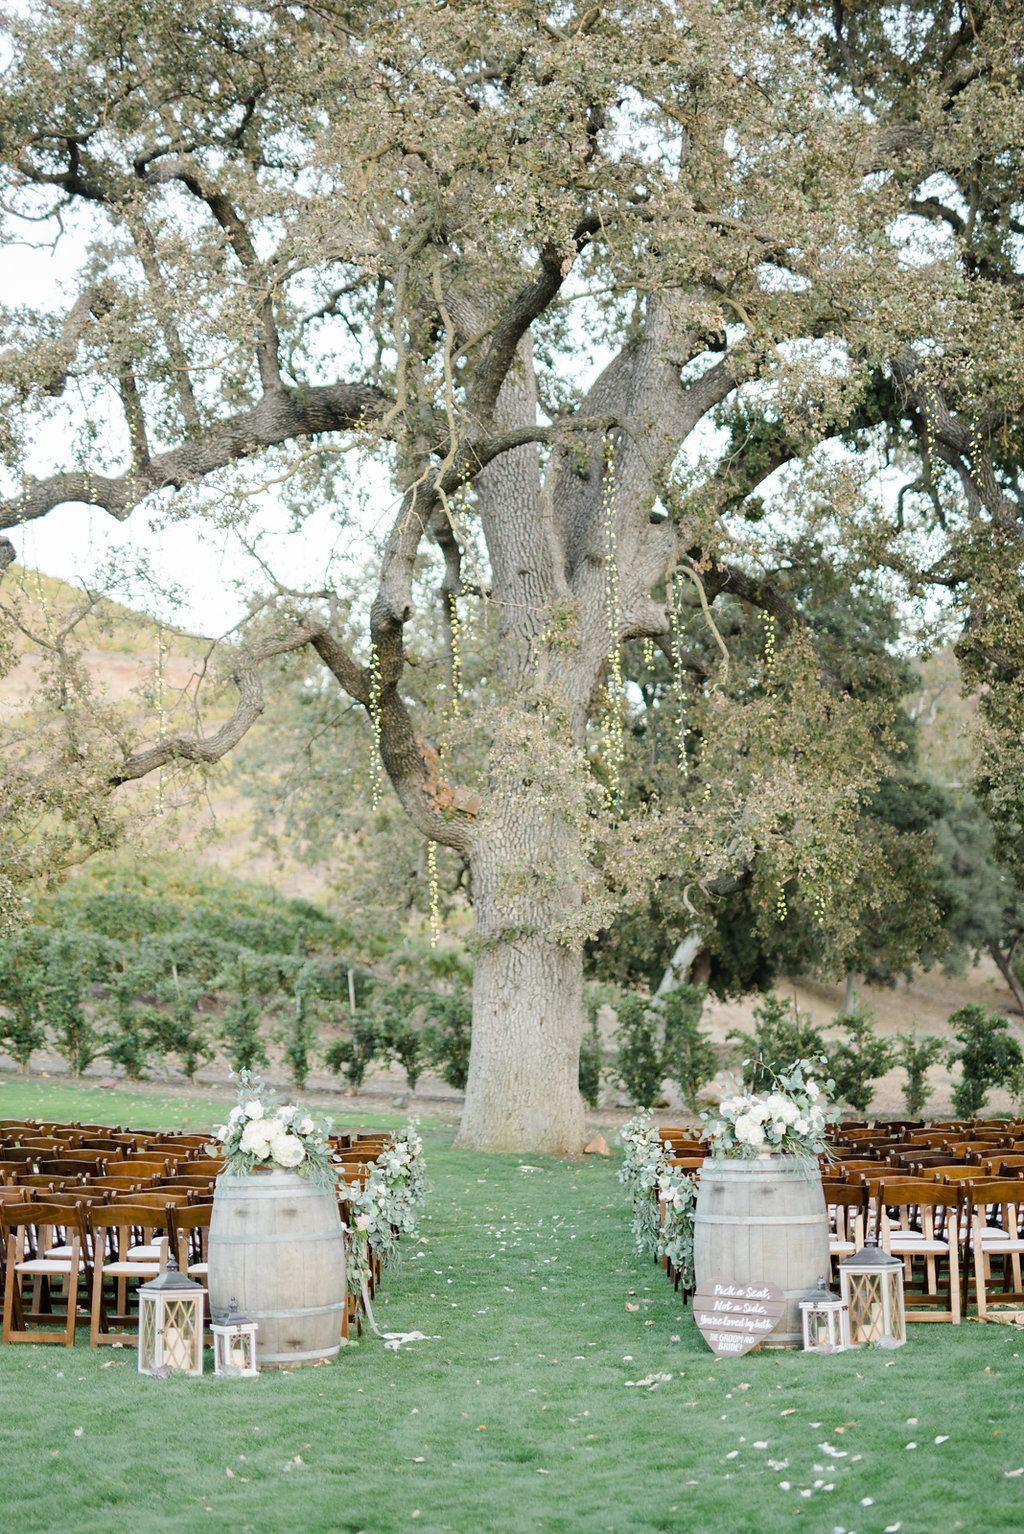 A Rustic Wedding at Triunfo Creek Vineyards - Feathered Arrow Wedding Planning